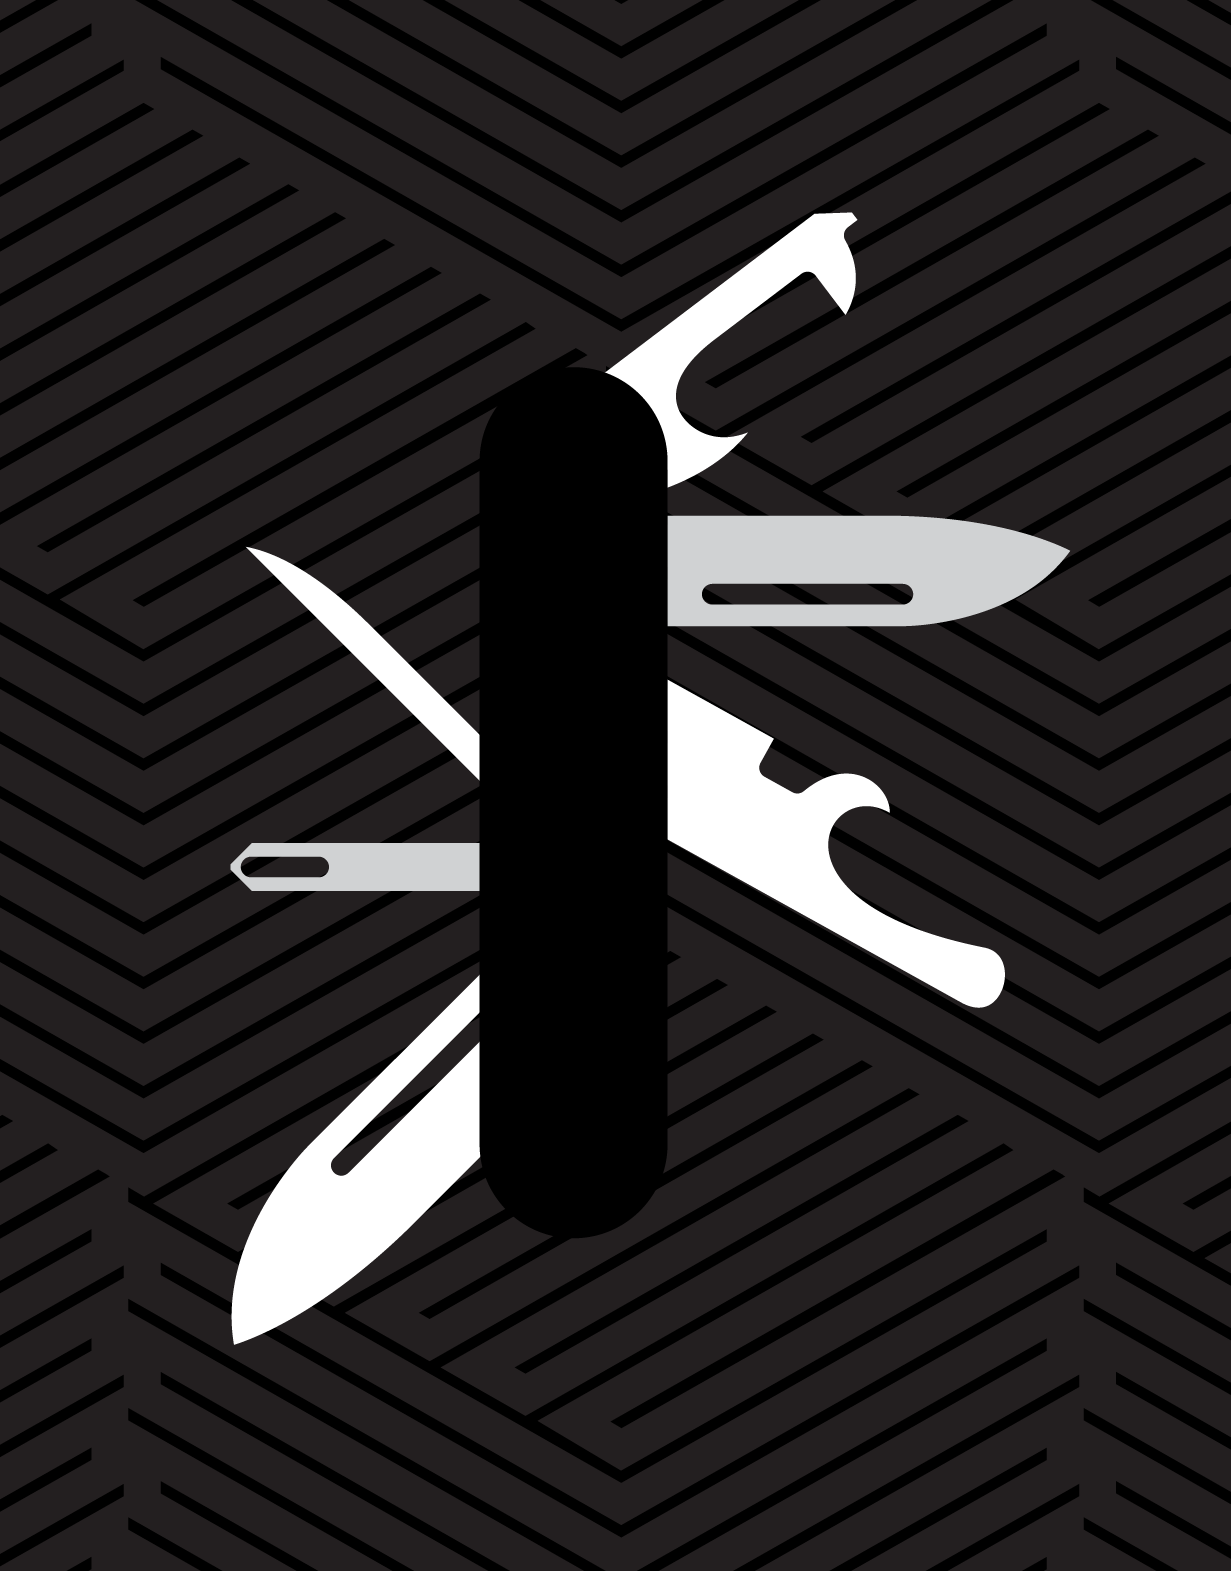 Illustrated swiss army knife